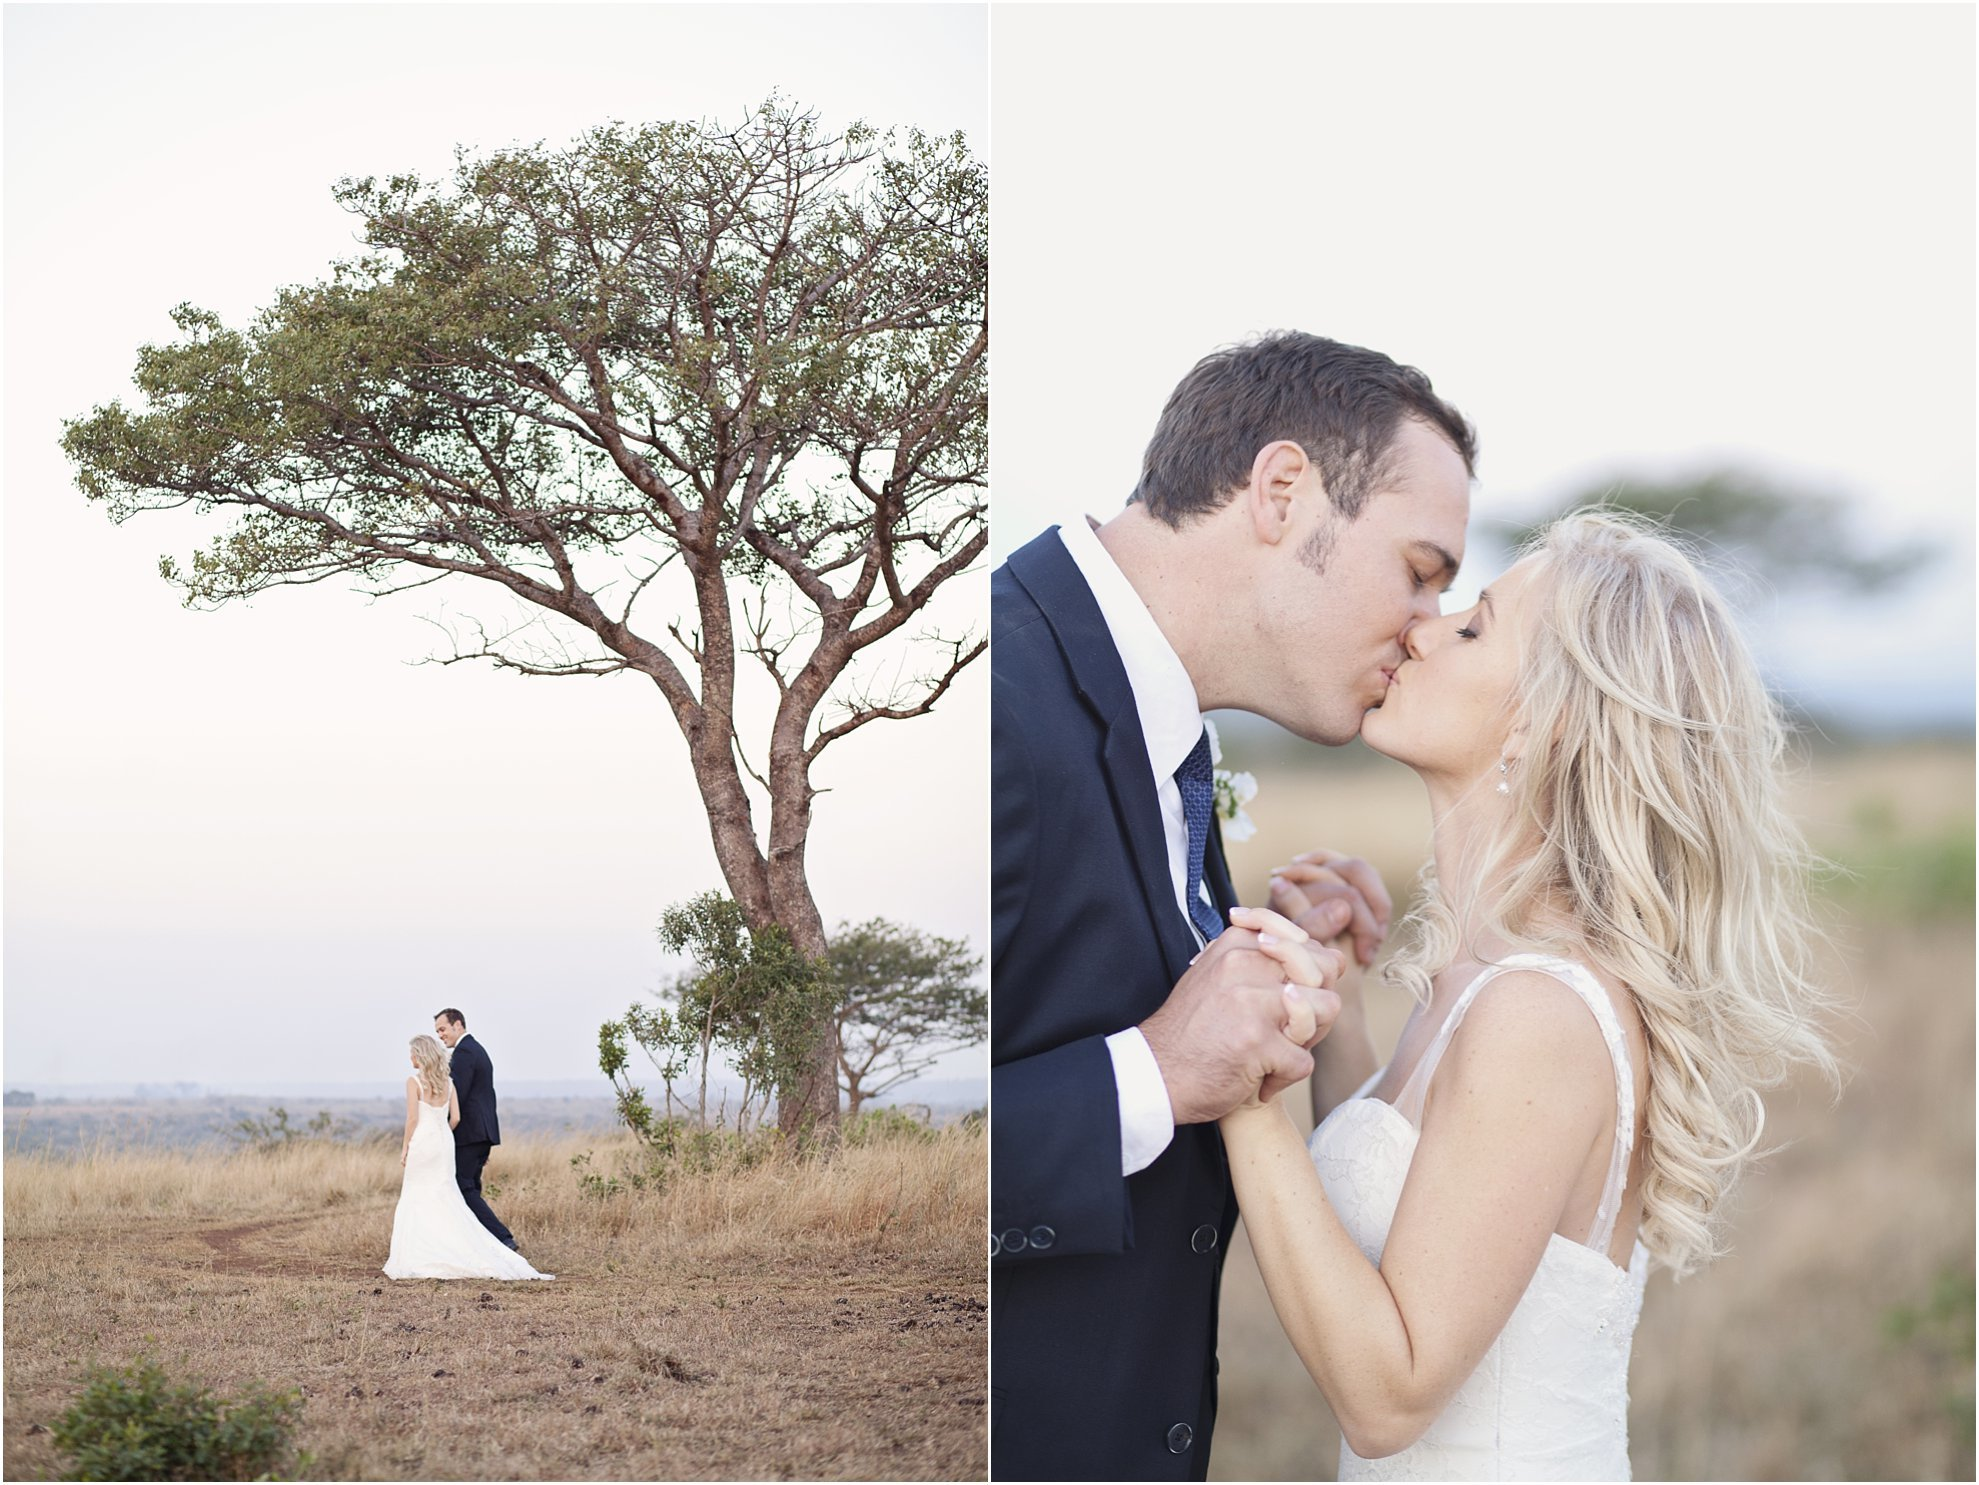 FIONA CLAIR PHOTOGRAPHY Jean & Natalie Swart 01 06 2013_0111